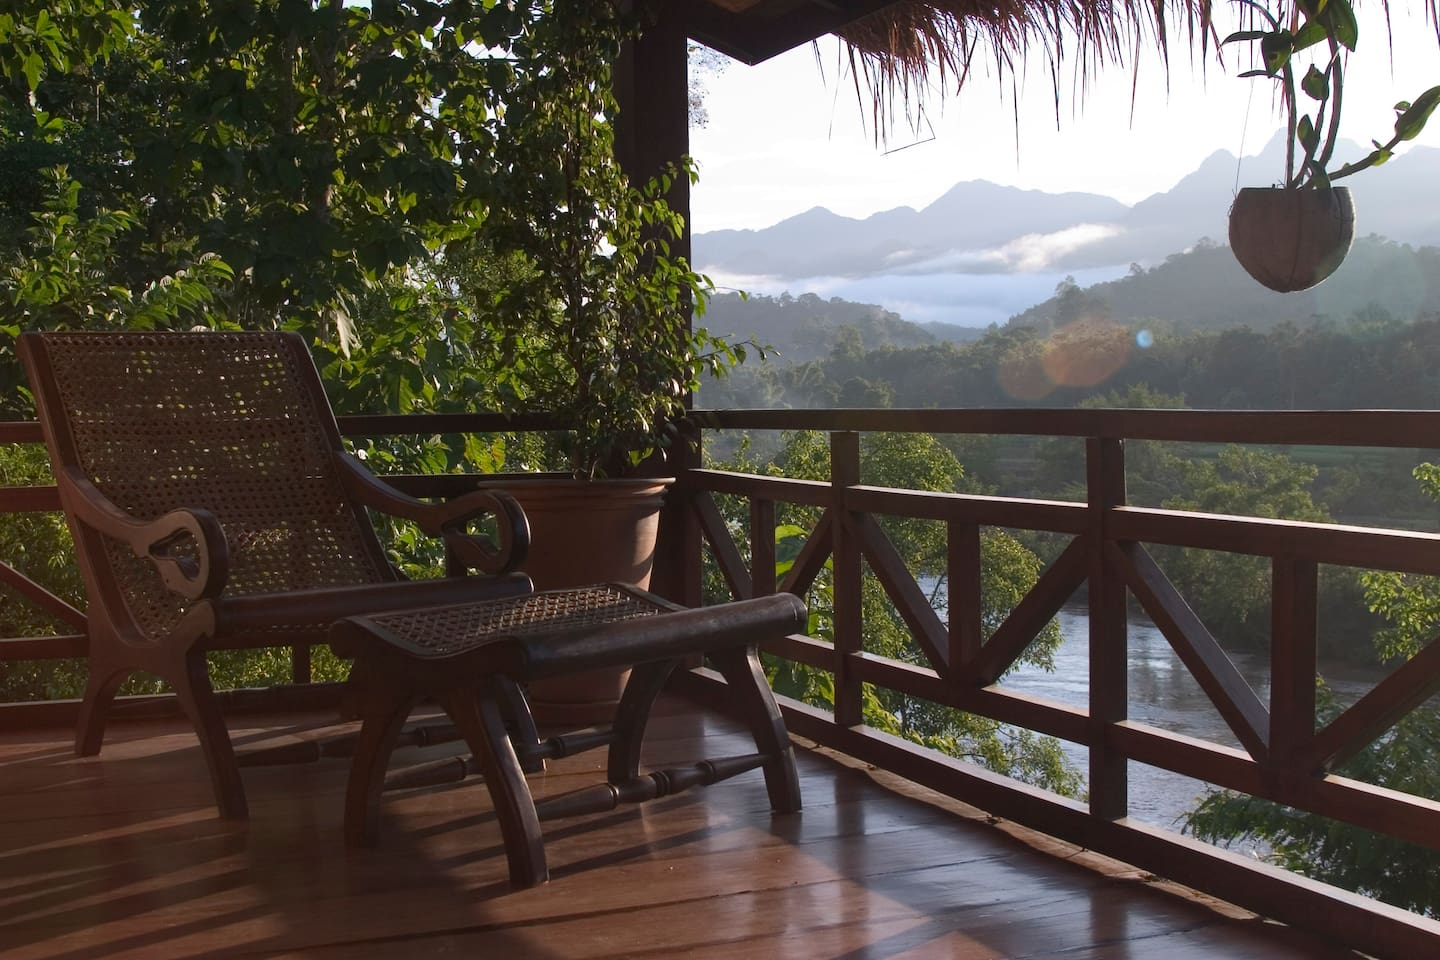 Relax on your very own Bungalow terrace with breathtaking views